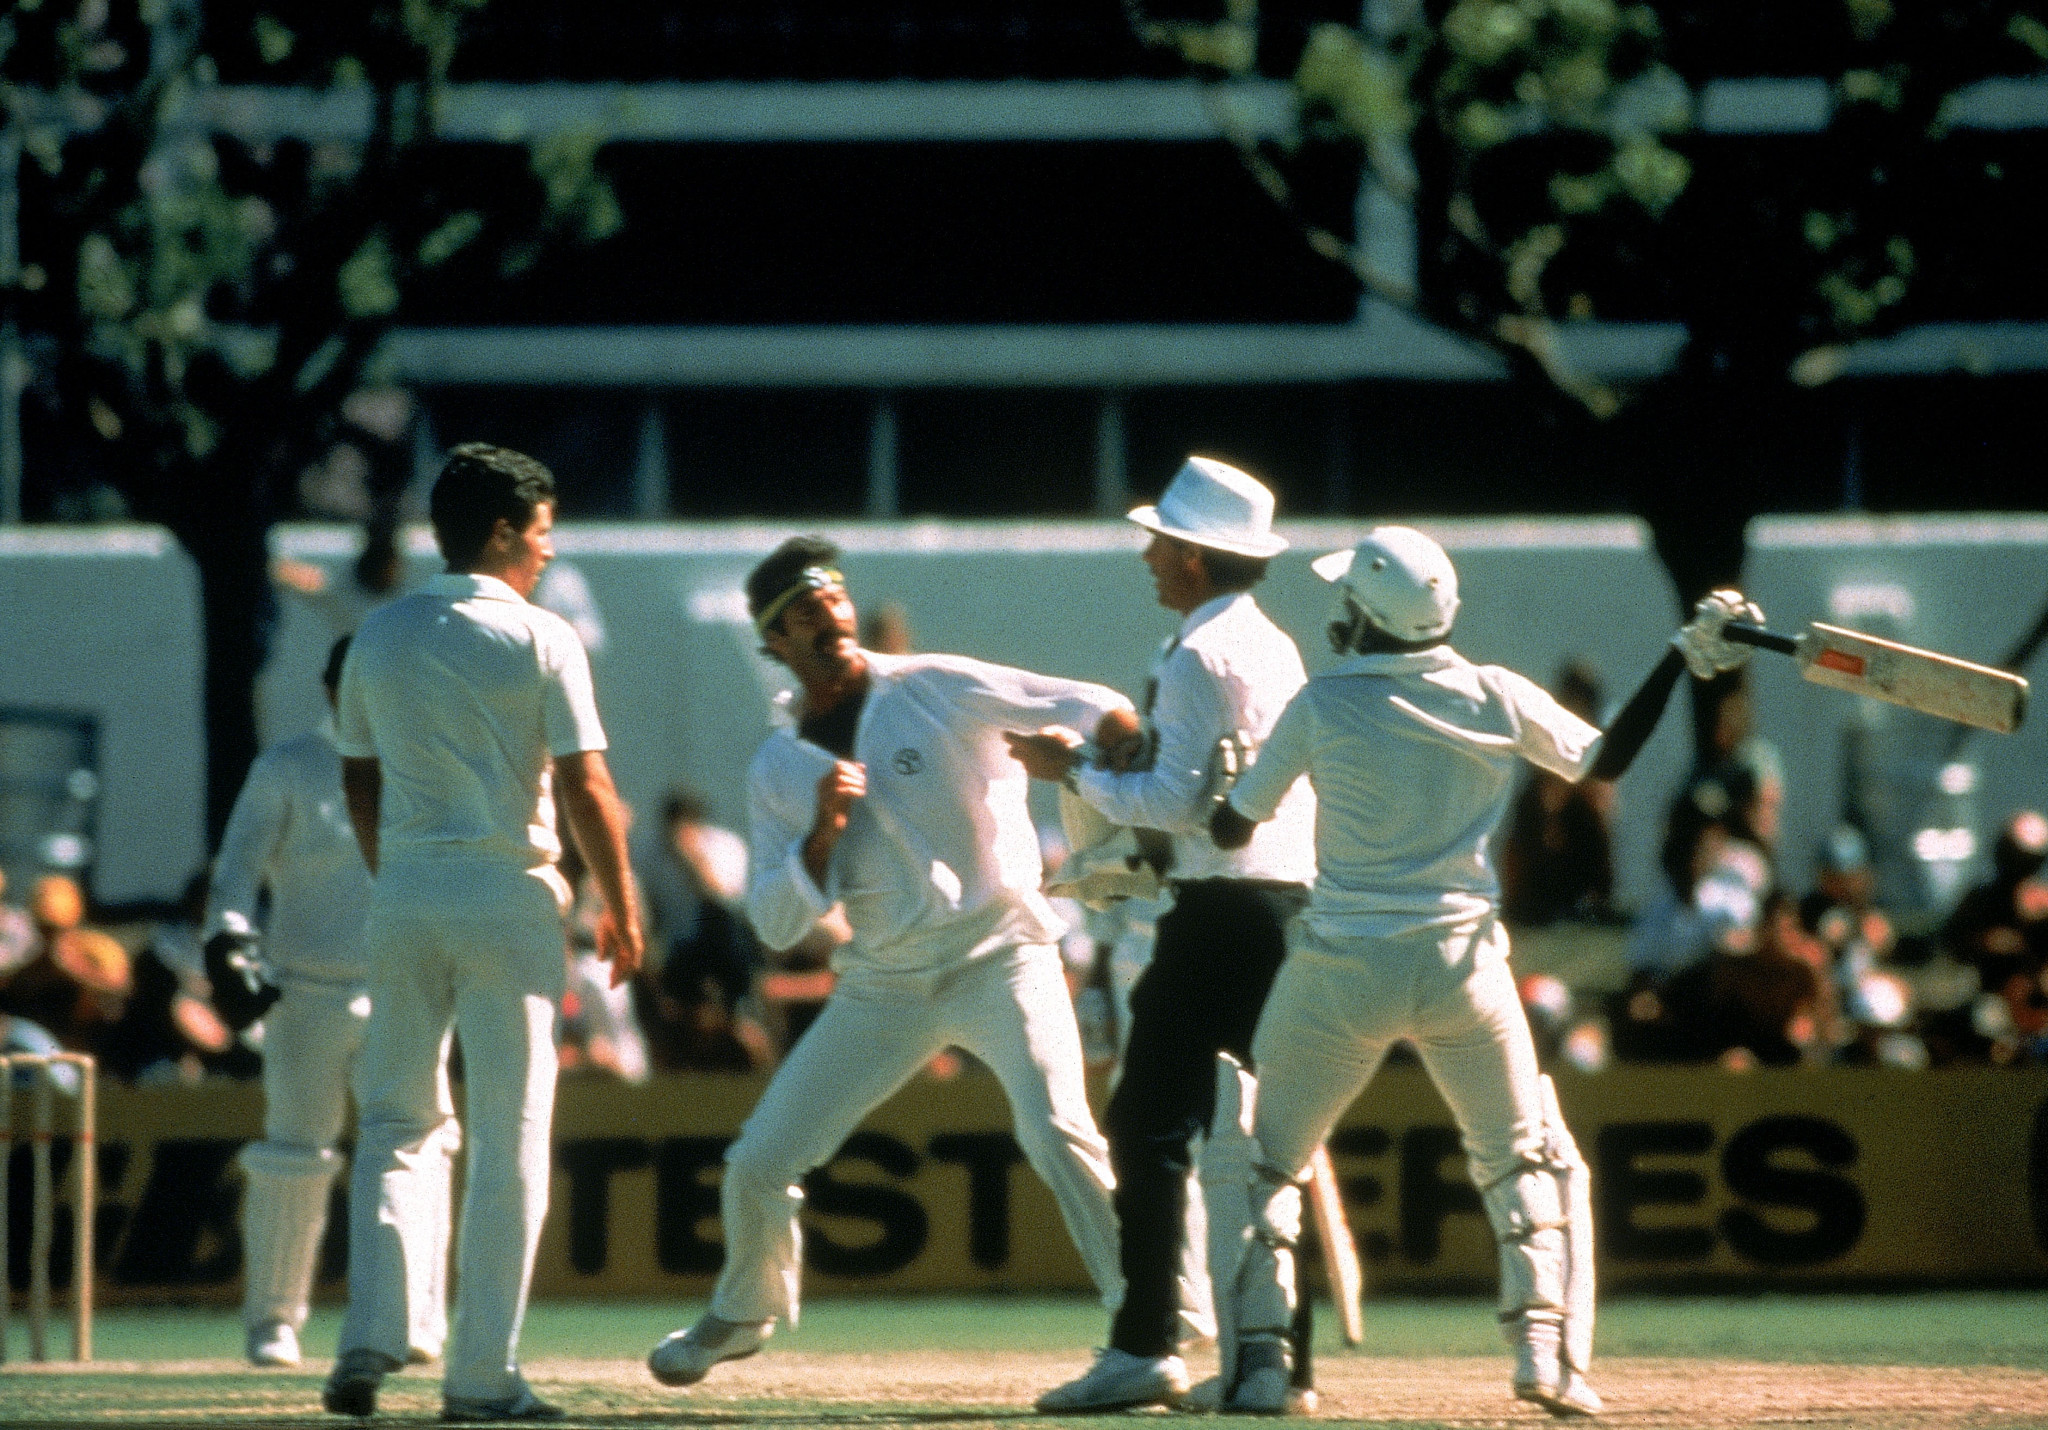 Dennis Lillee, left, and Javed Miandad nearly come to blows in a test Match in 1981 ©Getty Images